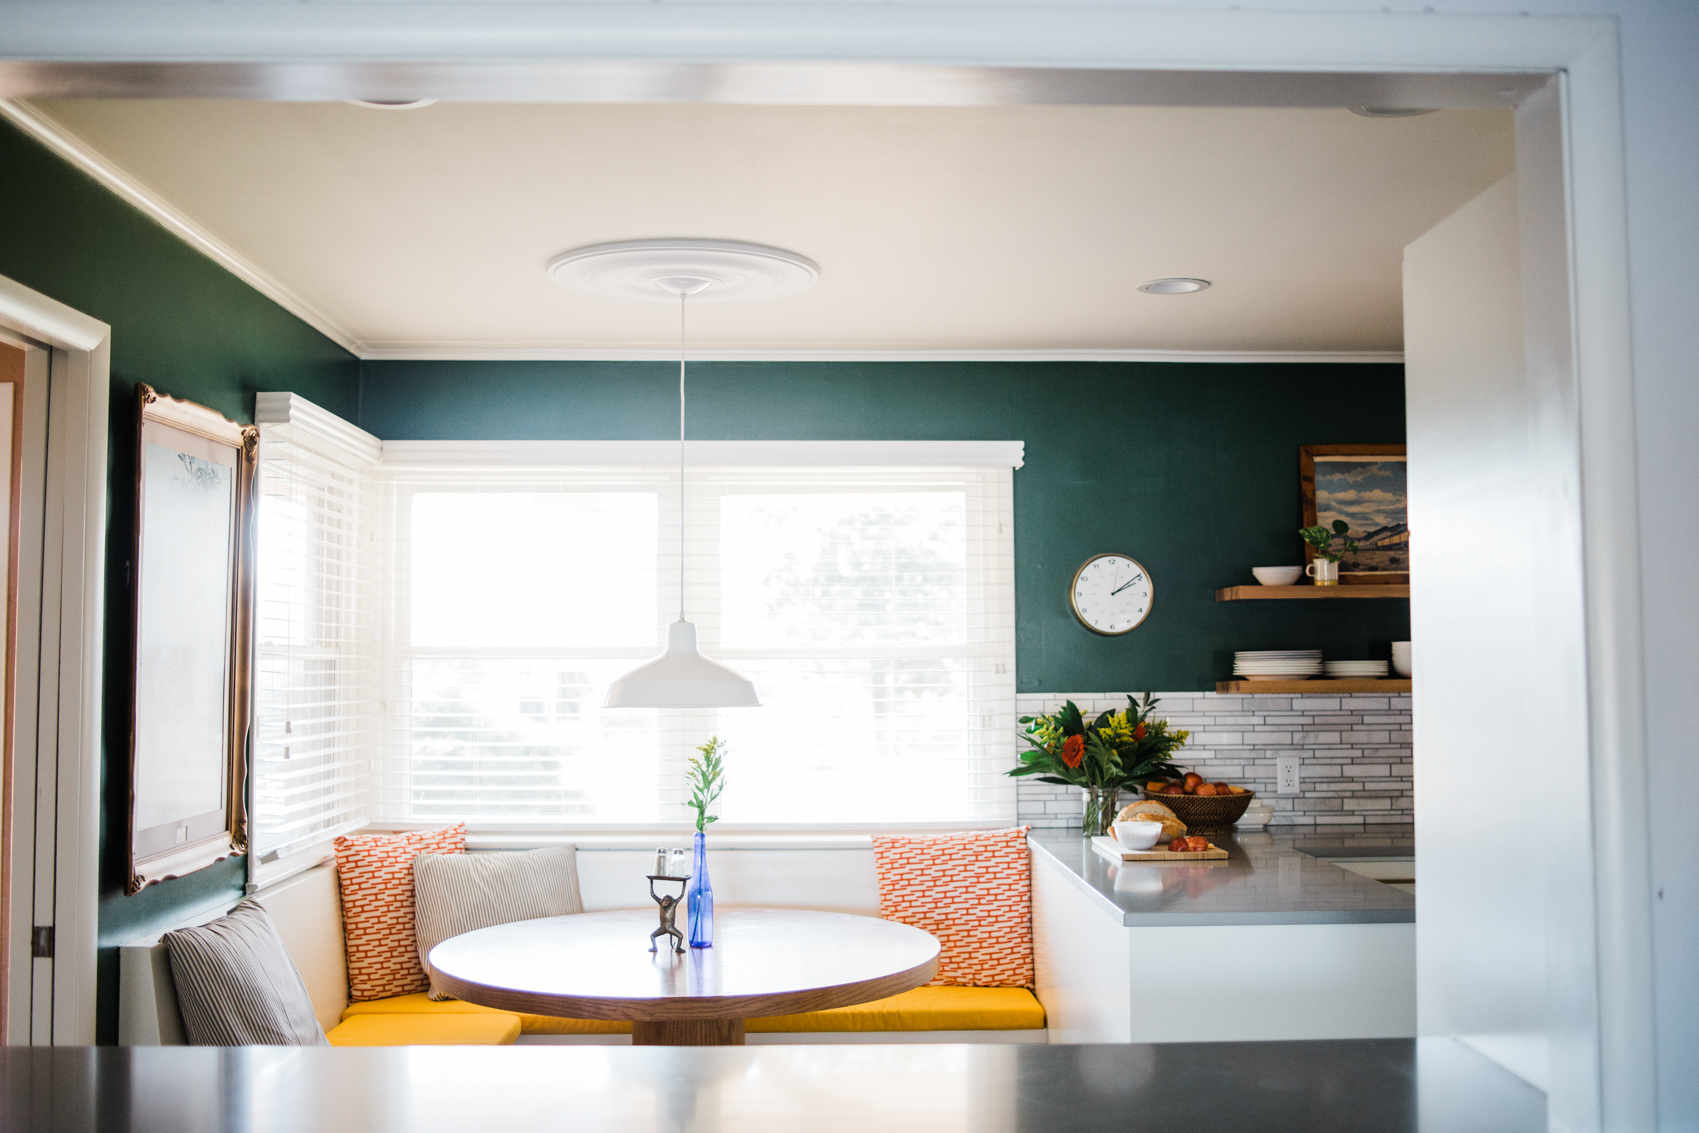 Creating A Built In Banquette Or Bench Seating For Kitchen Breakfast Nook Retro Den Vintage Furniture And Homewares